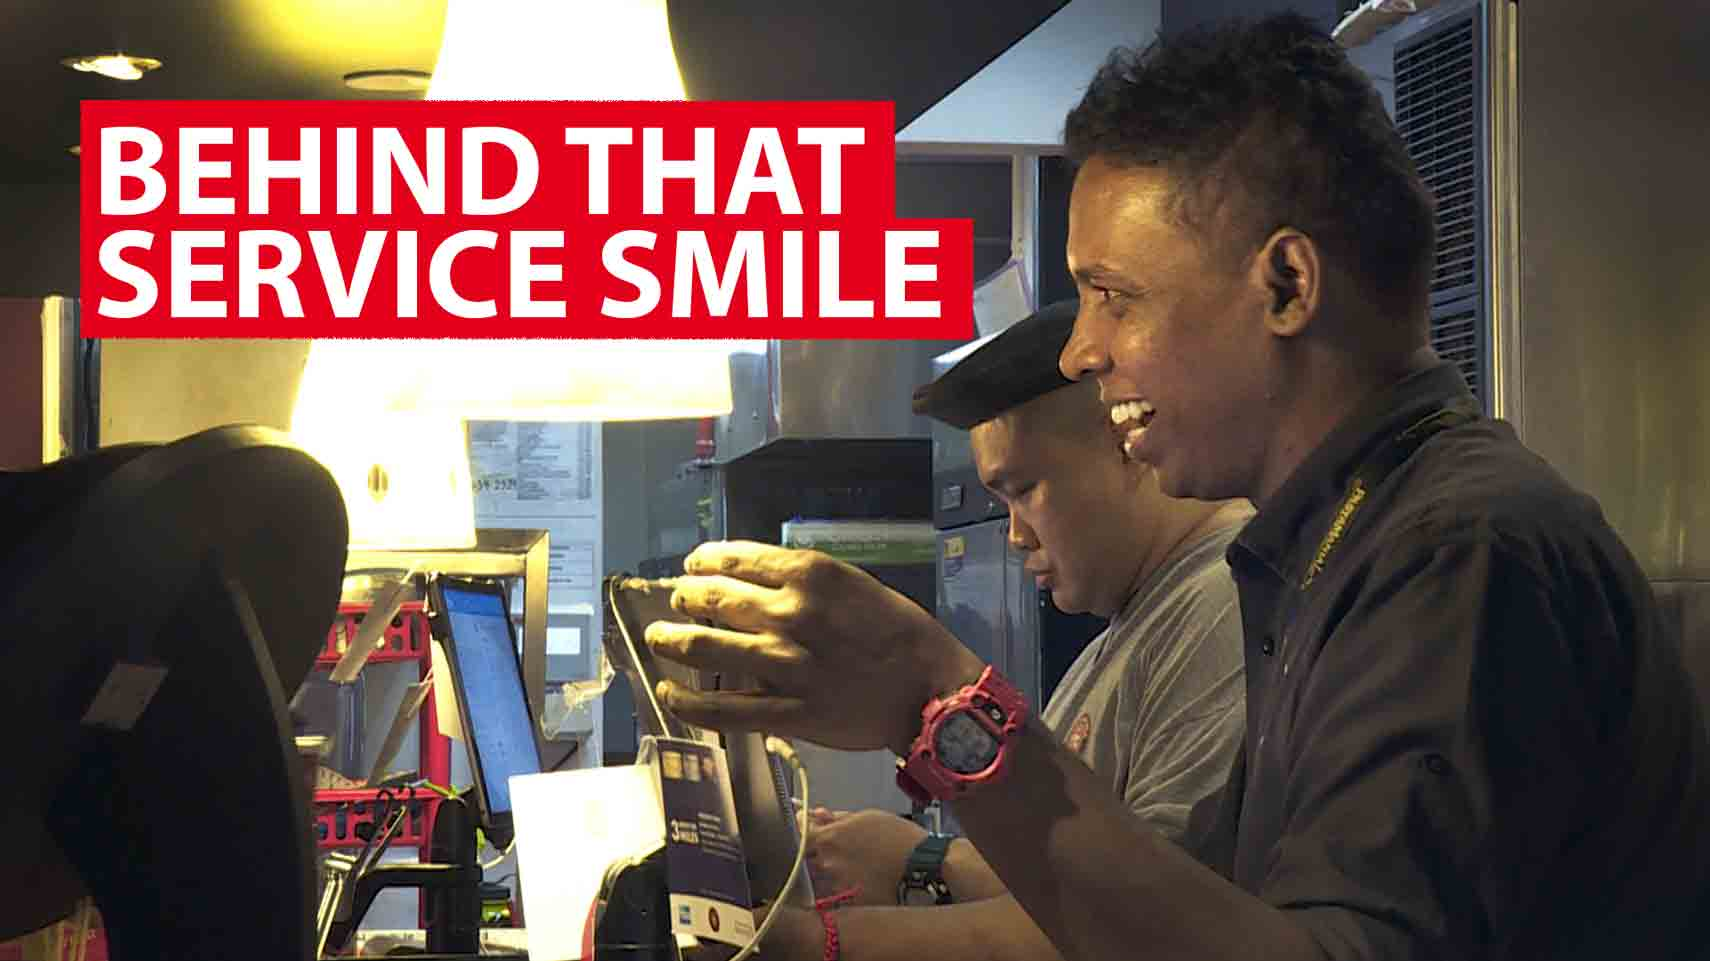 Behind that service smile